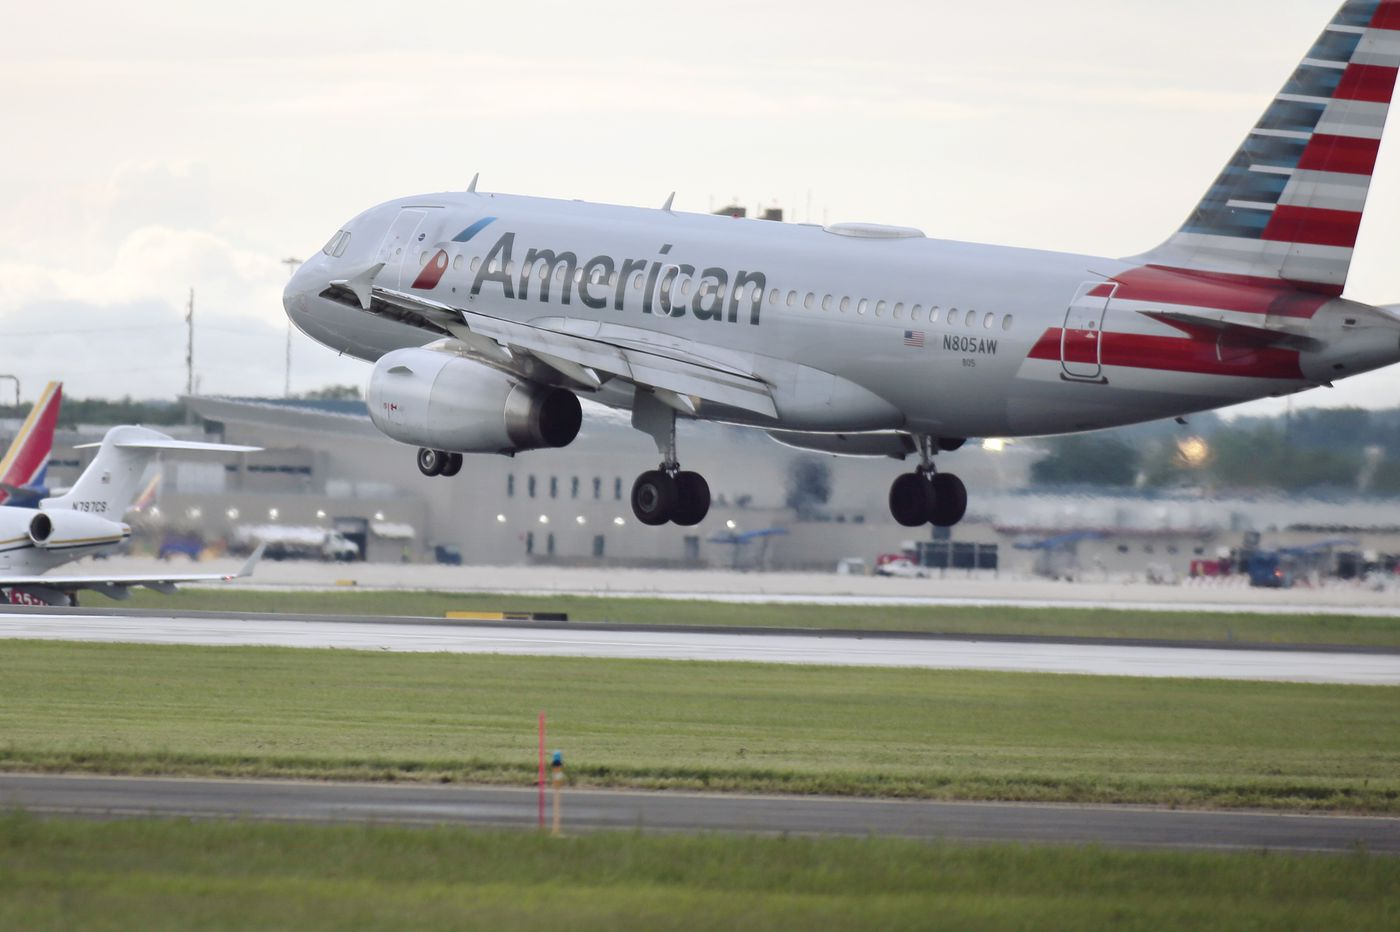 From Florida to Casablanca, a look at American Airlines' Philly strategy